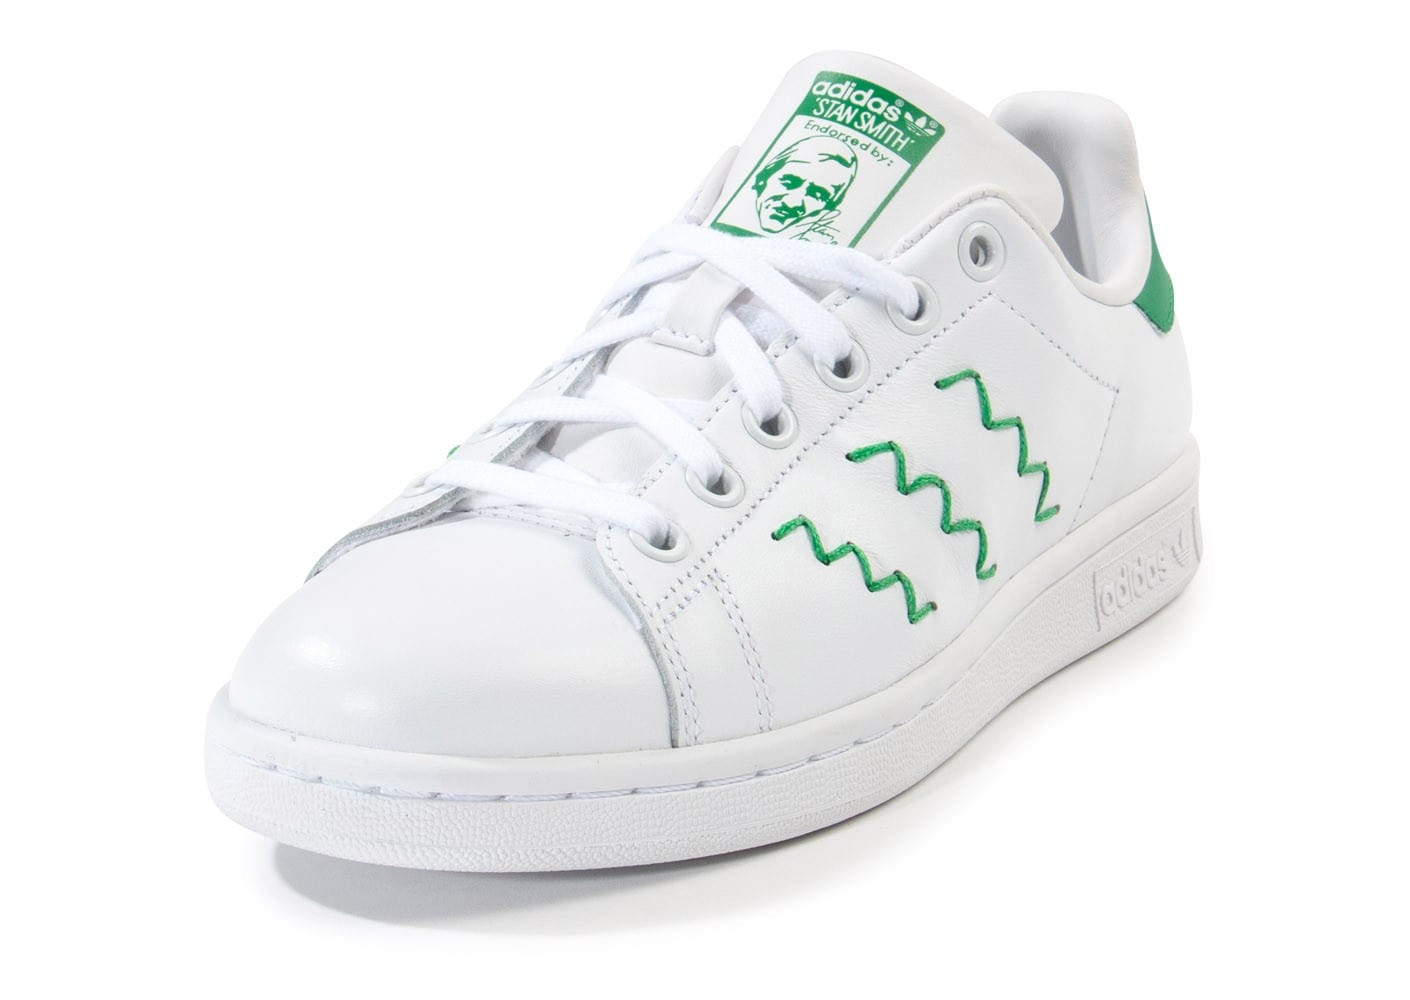 adidas stan smith zigzag blanche chaussures adidas. Black Bedroom Furniture Sets. Home Design Ideas